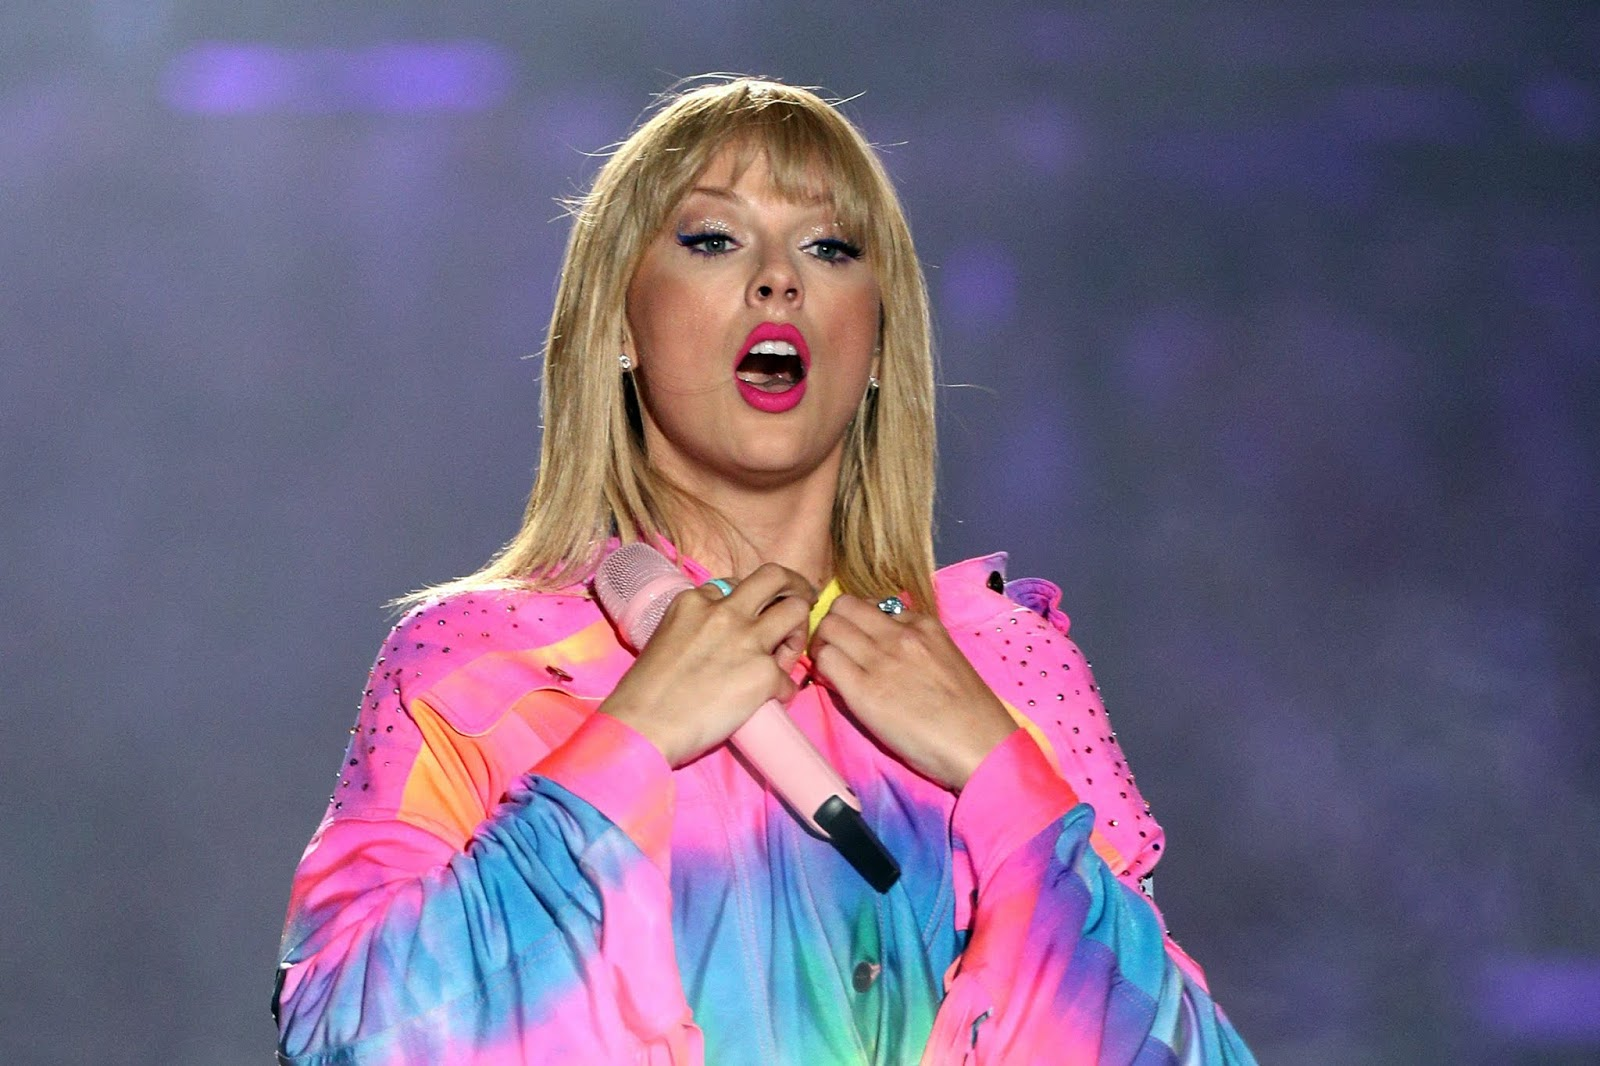 Check Out who the world's highest paid celebrity is...